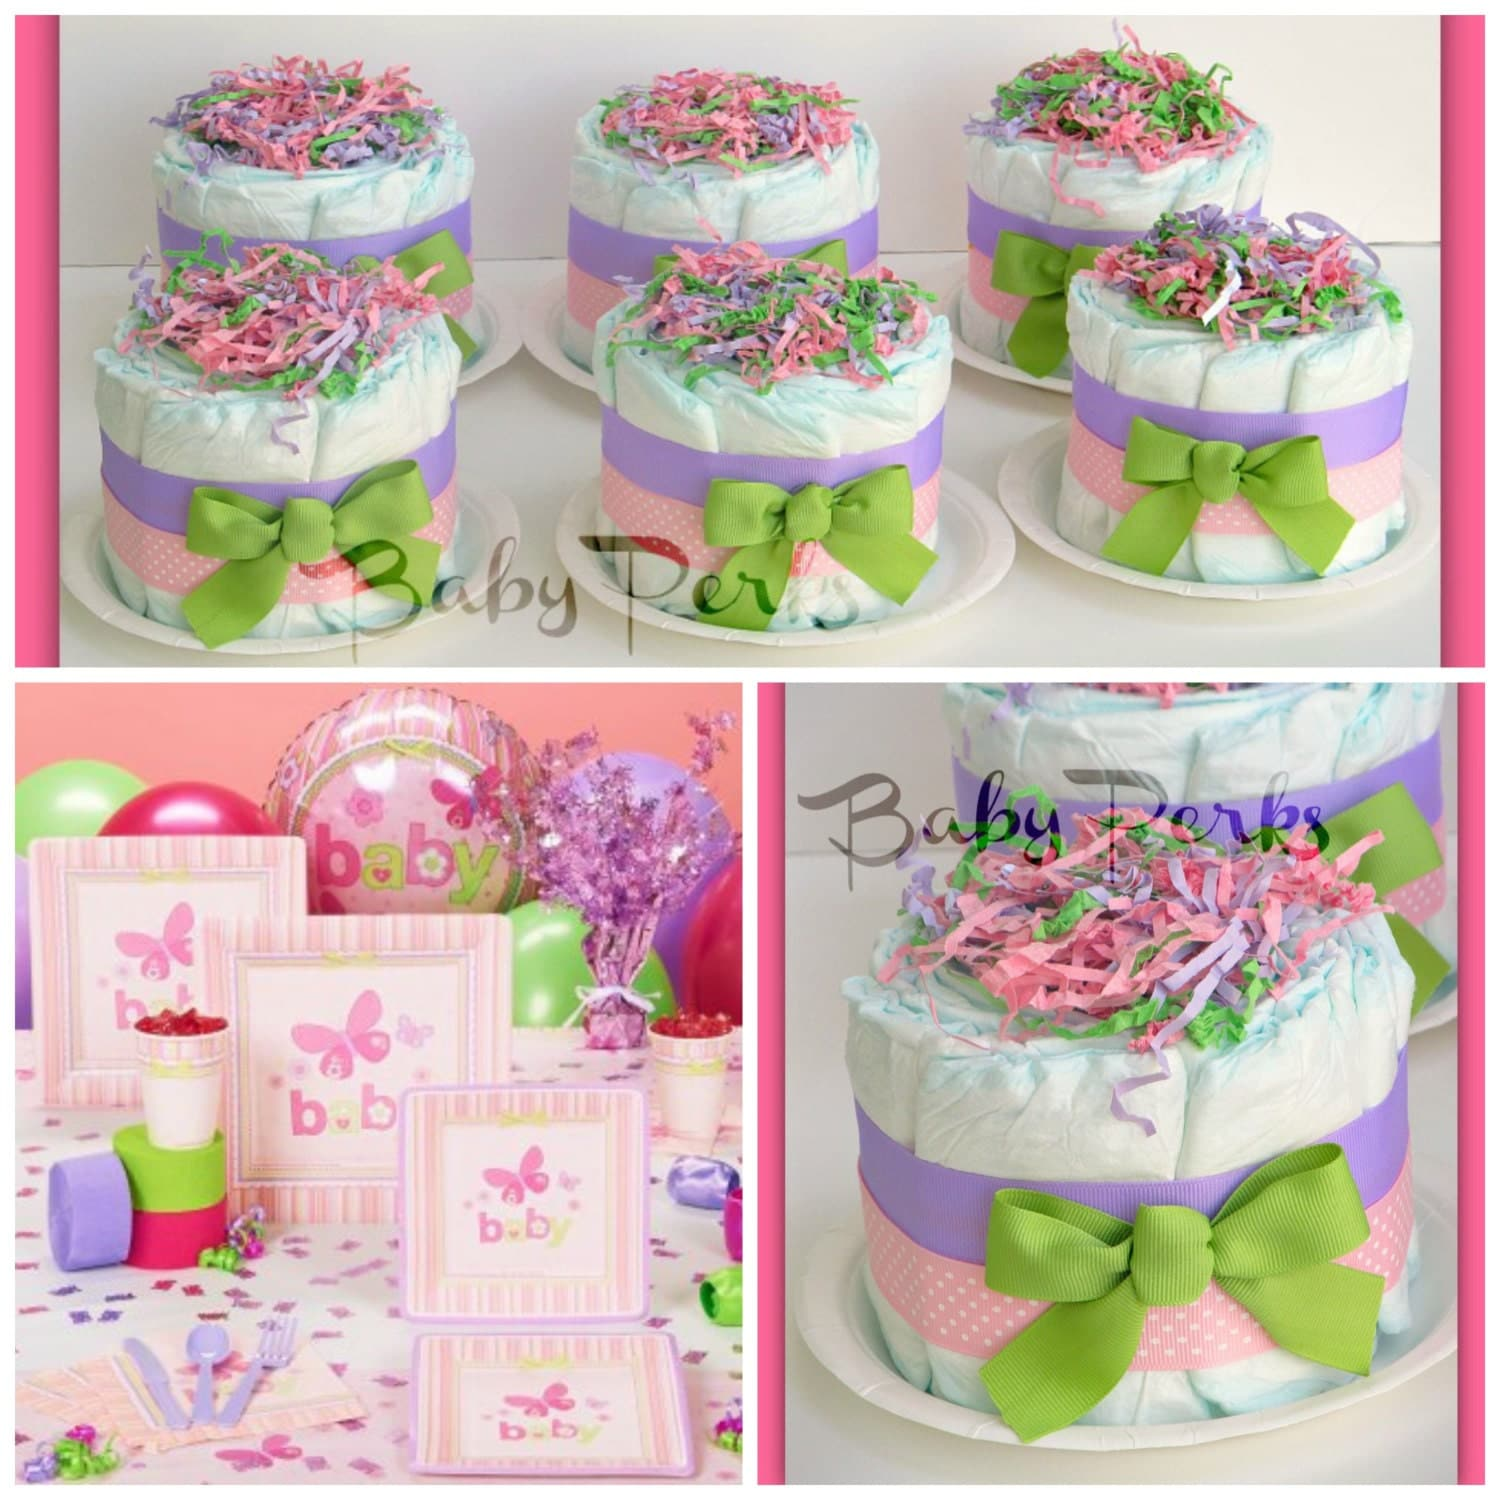 Baby Shower Themes Colors ~ Mini diaper cakes any colors baby shower decorations